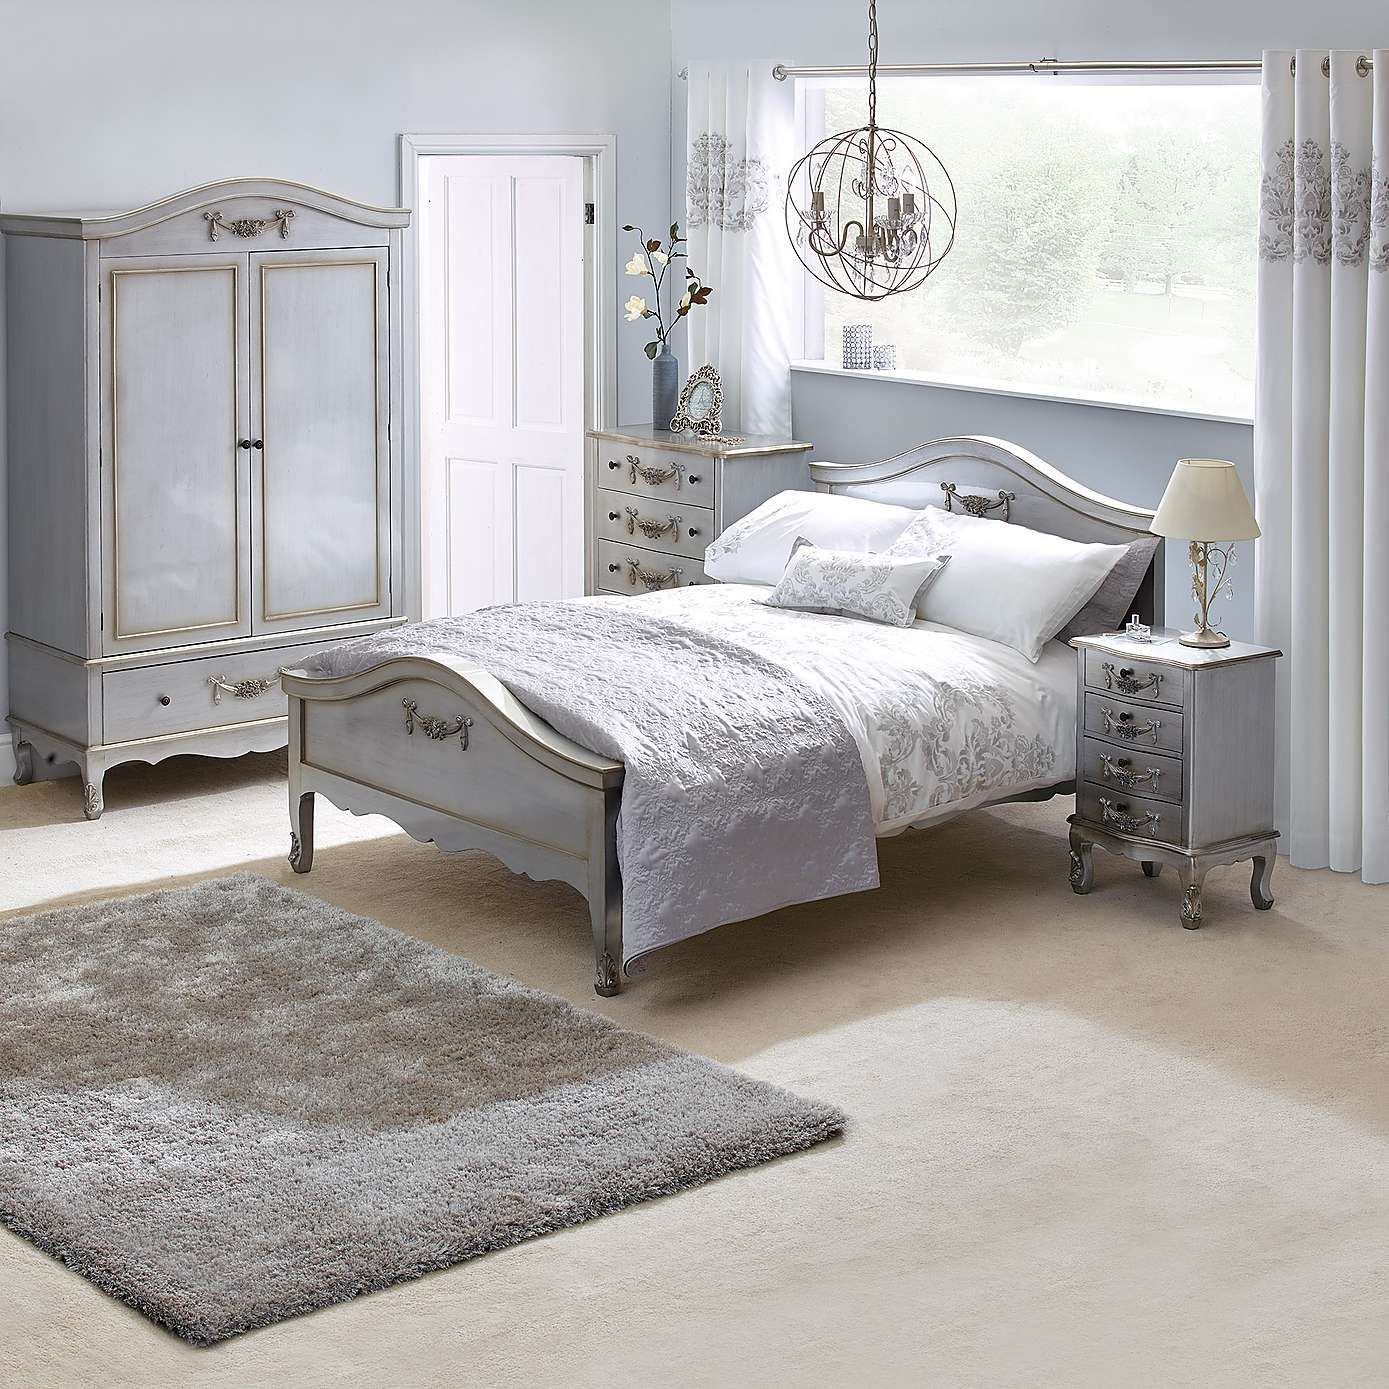 Silver Bedrooms Toulouse Silver Bedroom Collection Dunelm Second Bedroom